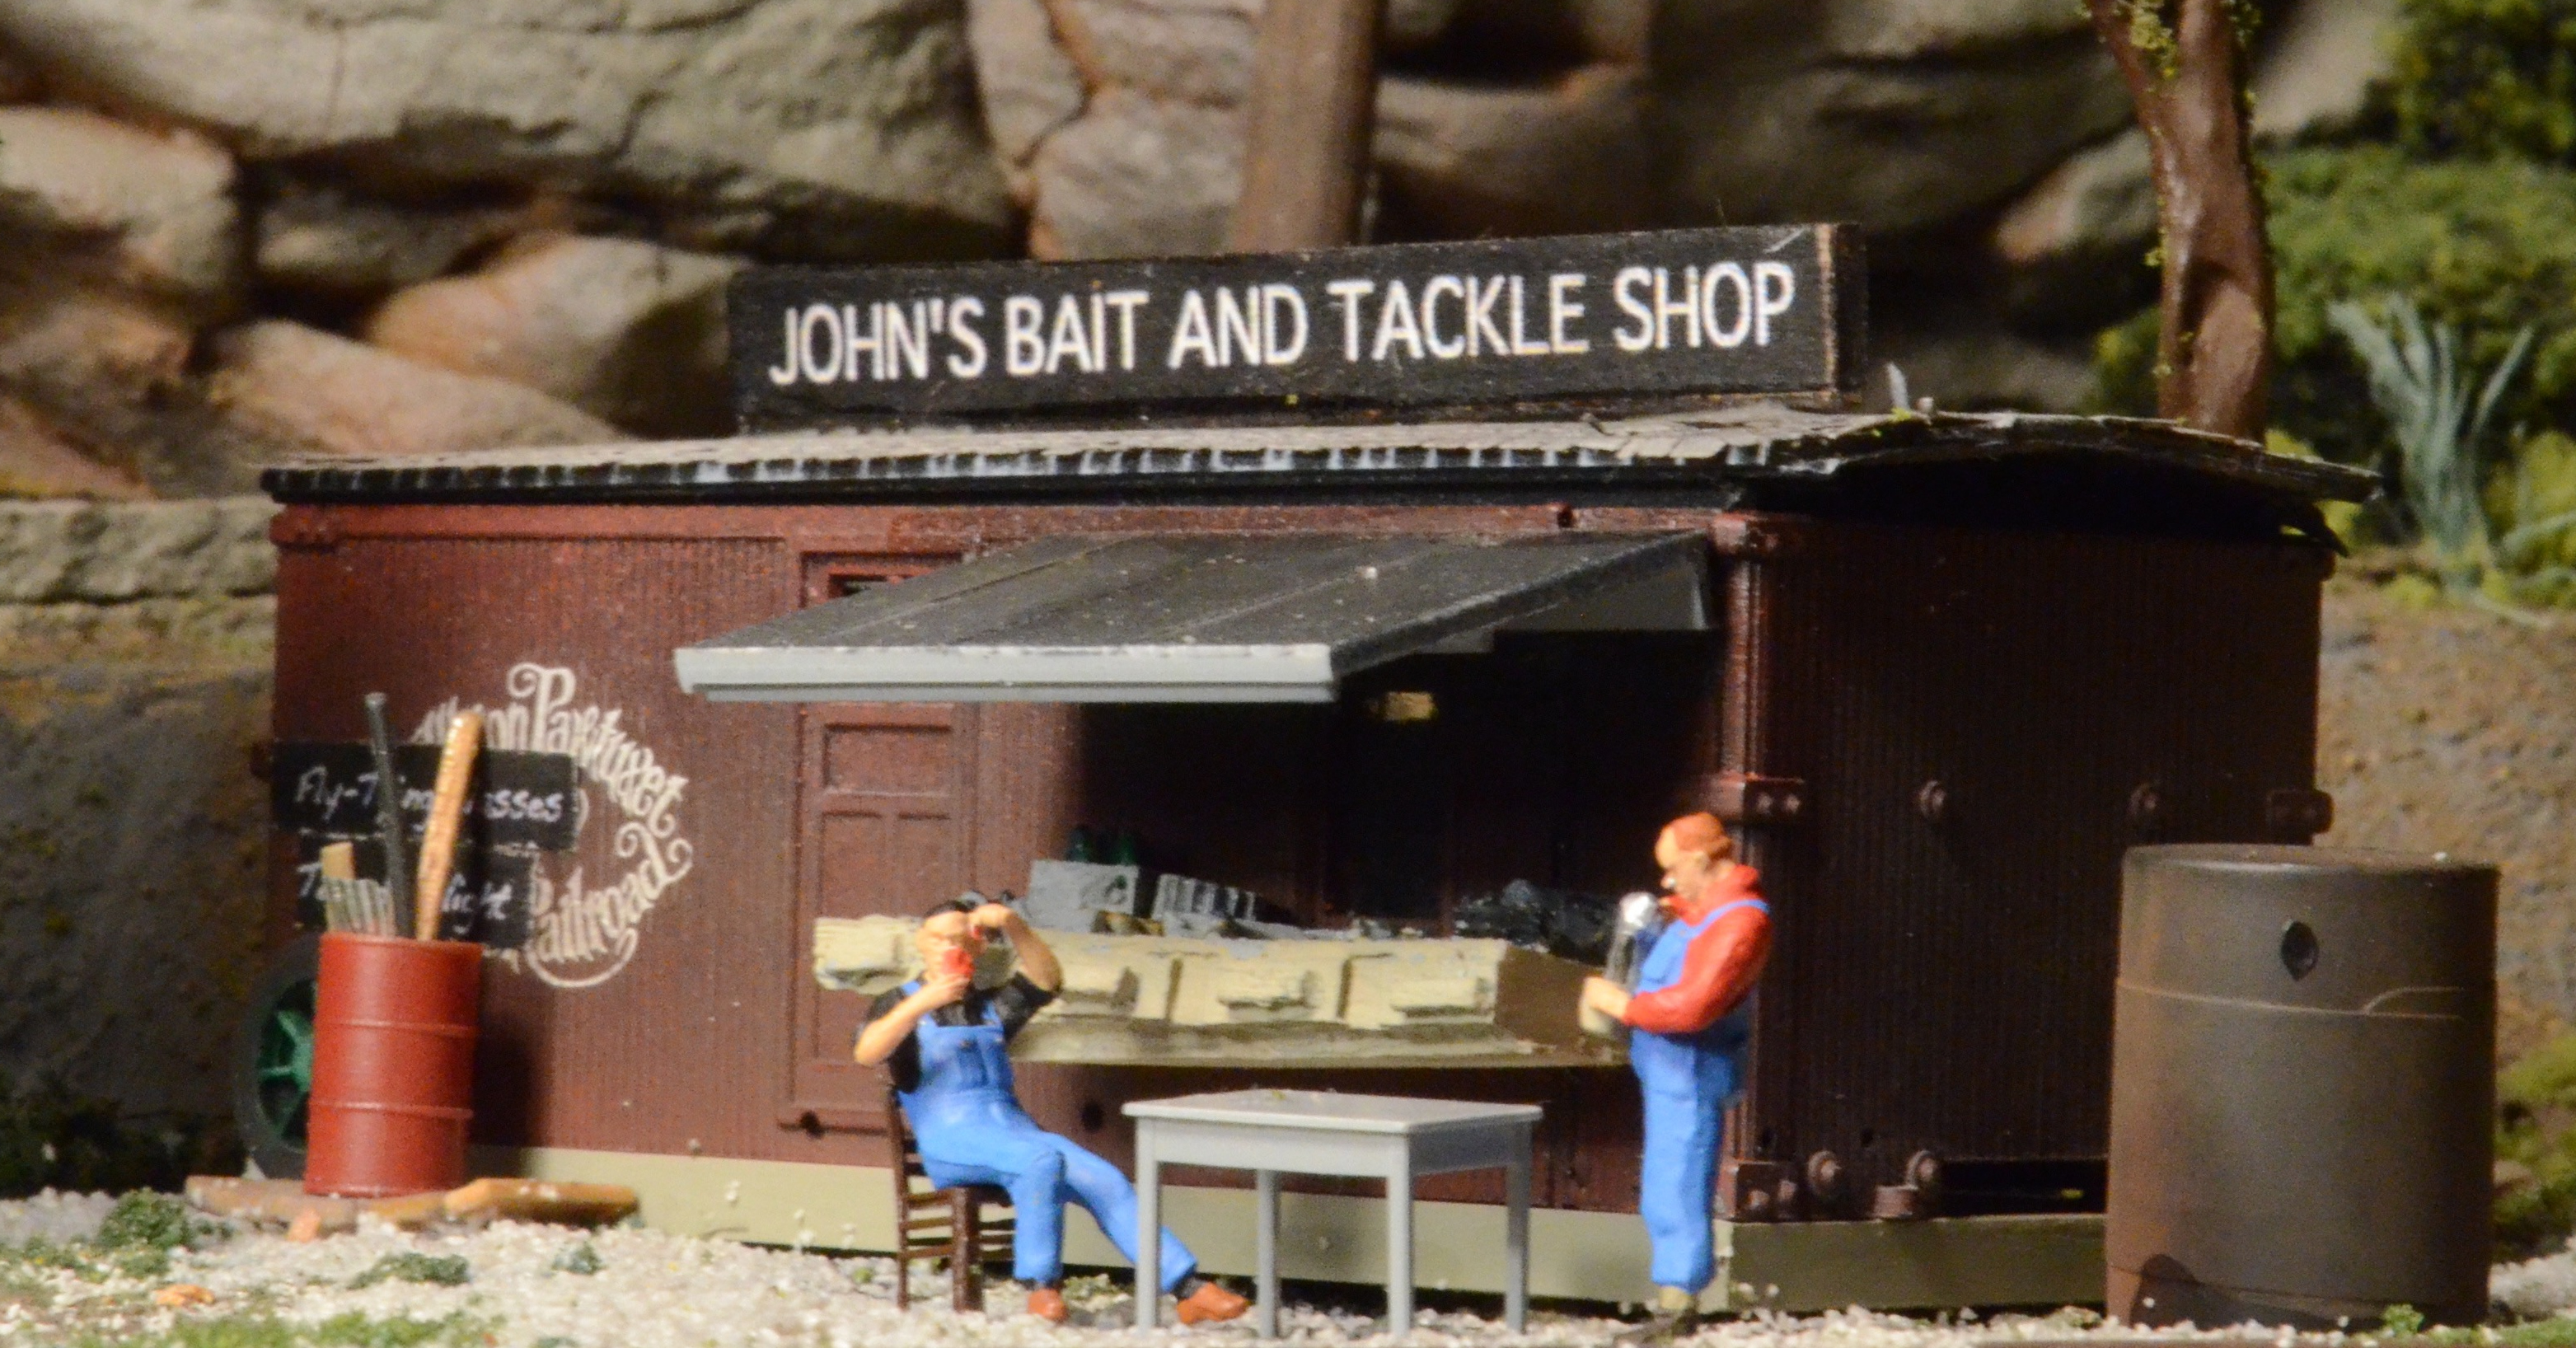 john u2019s bait and tackle shop